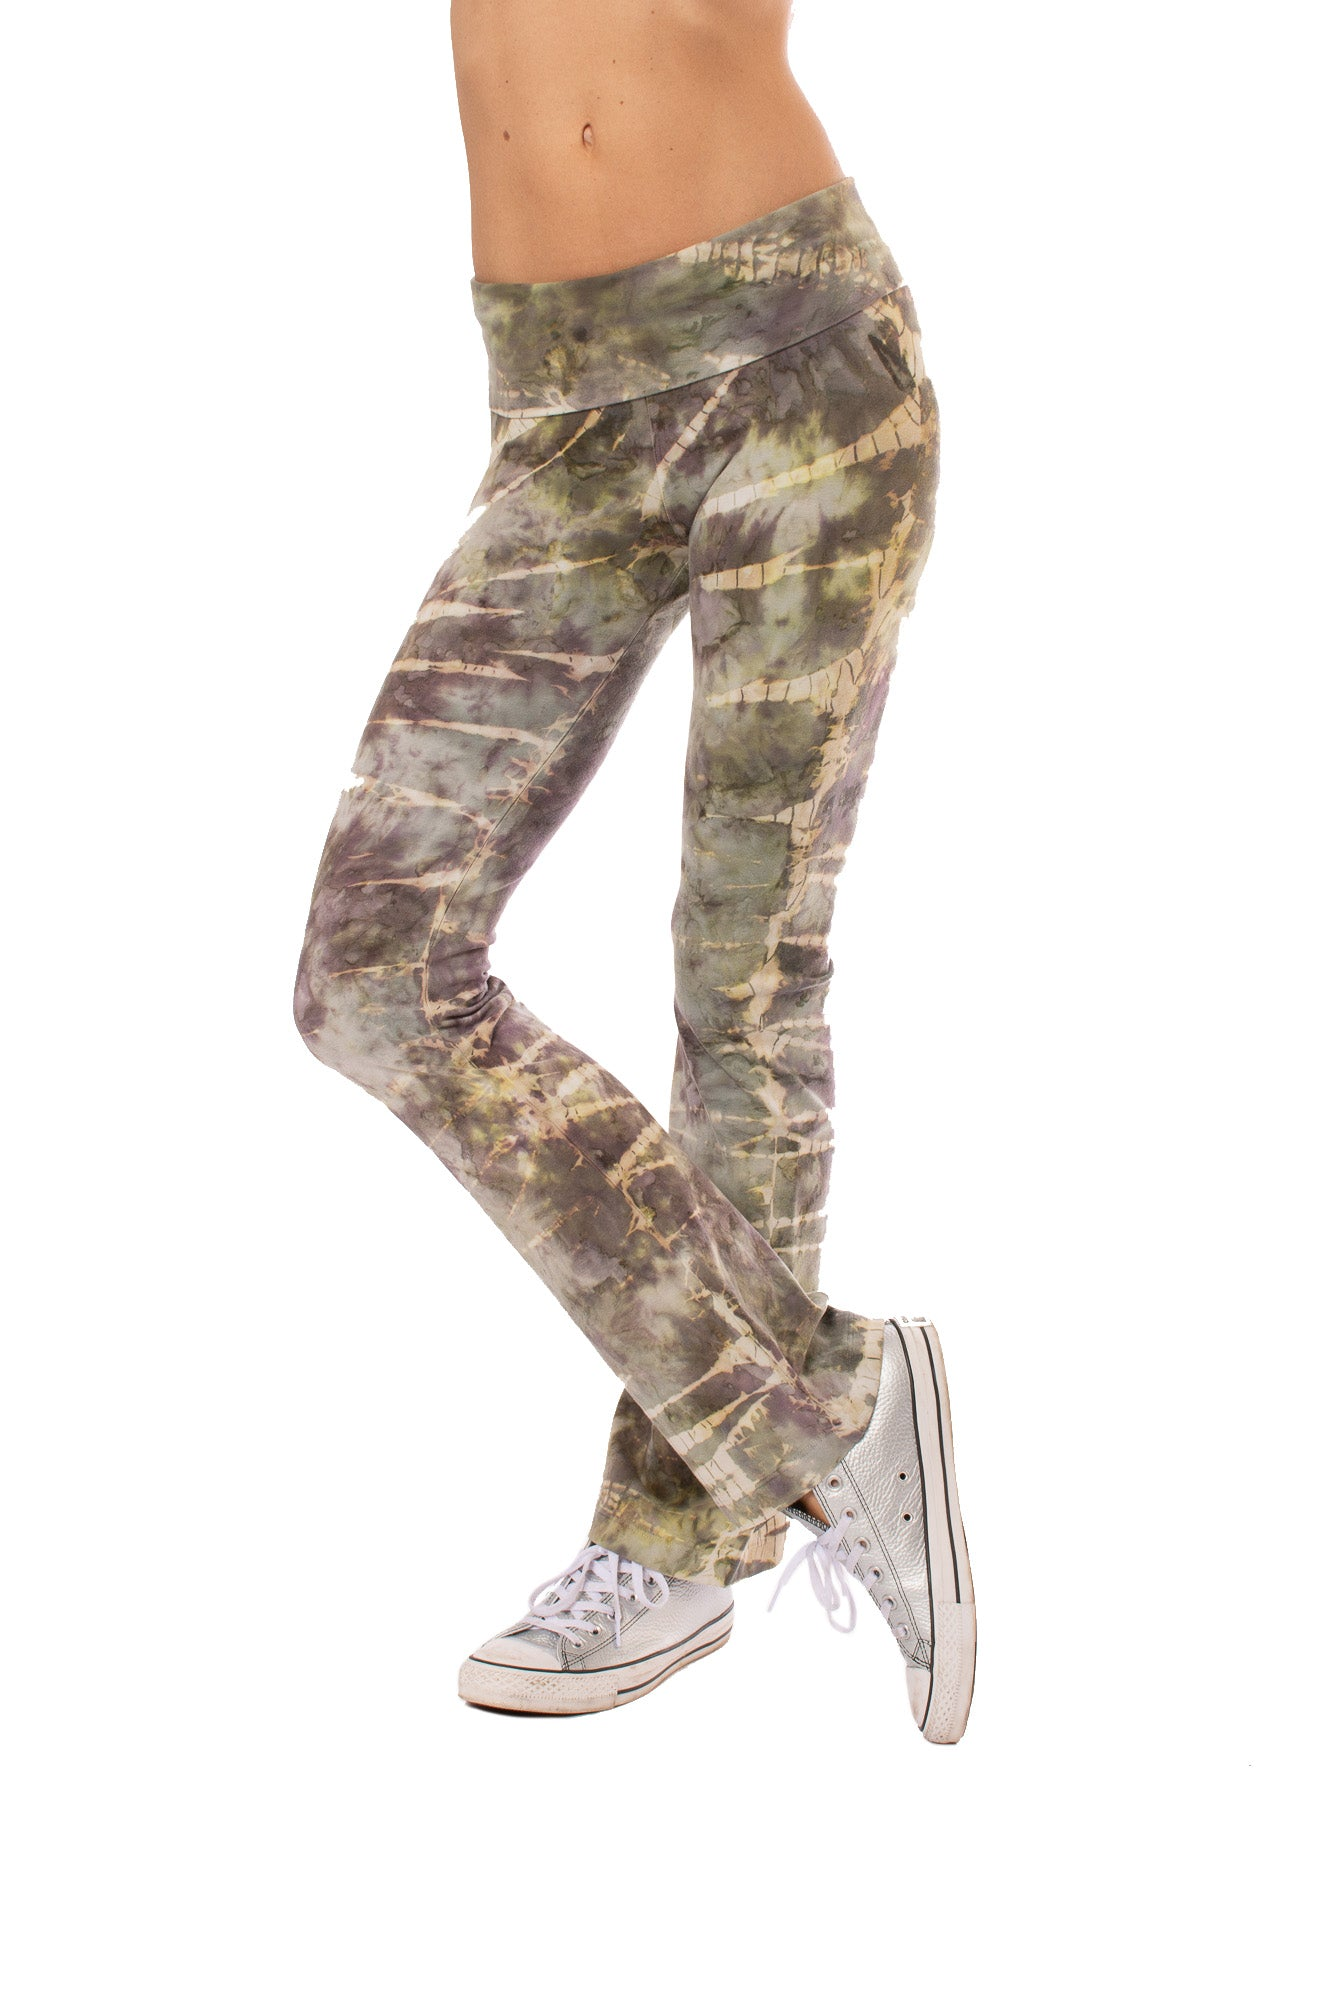 Hard Tail Forever - Roll Down Boot Leg Tie-Dye Stw1 (330, Tie-Dye STW1)